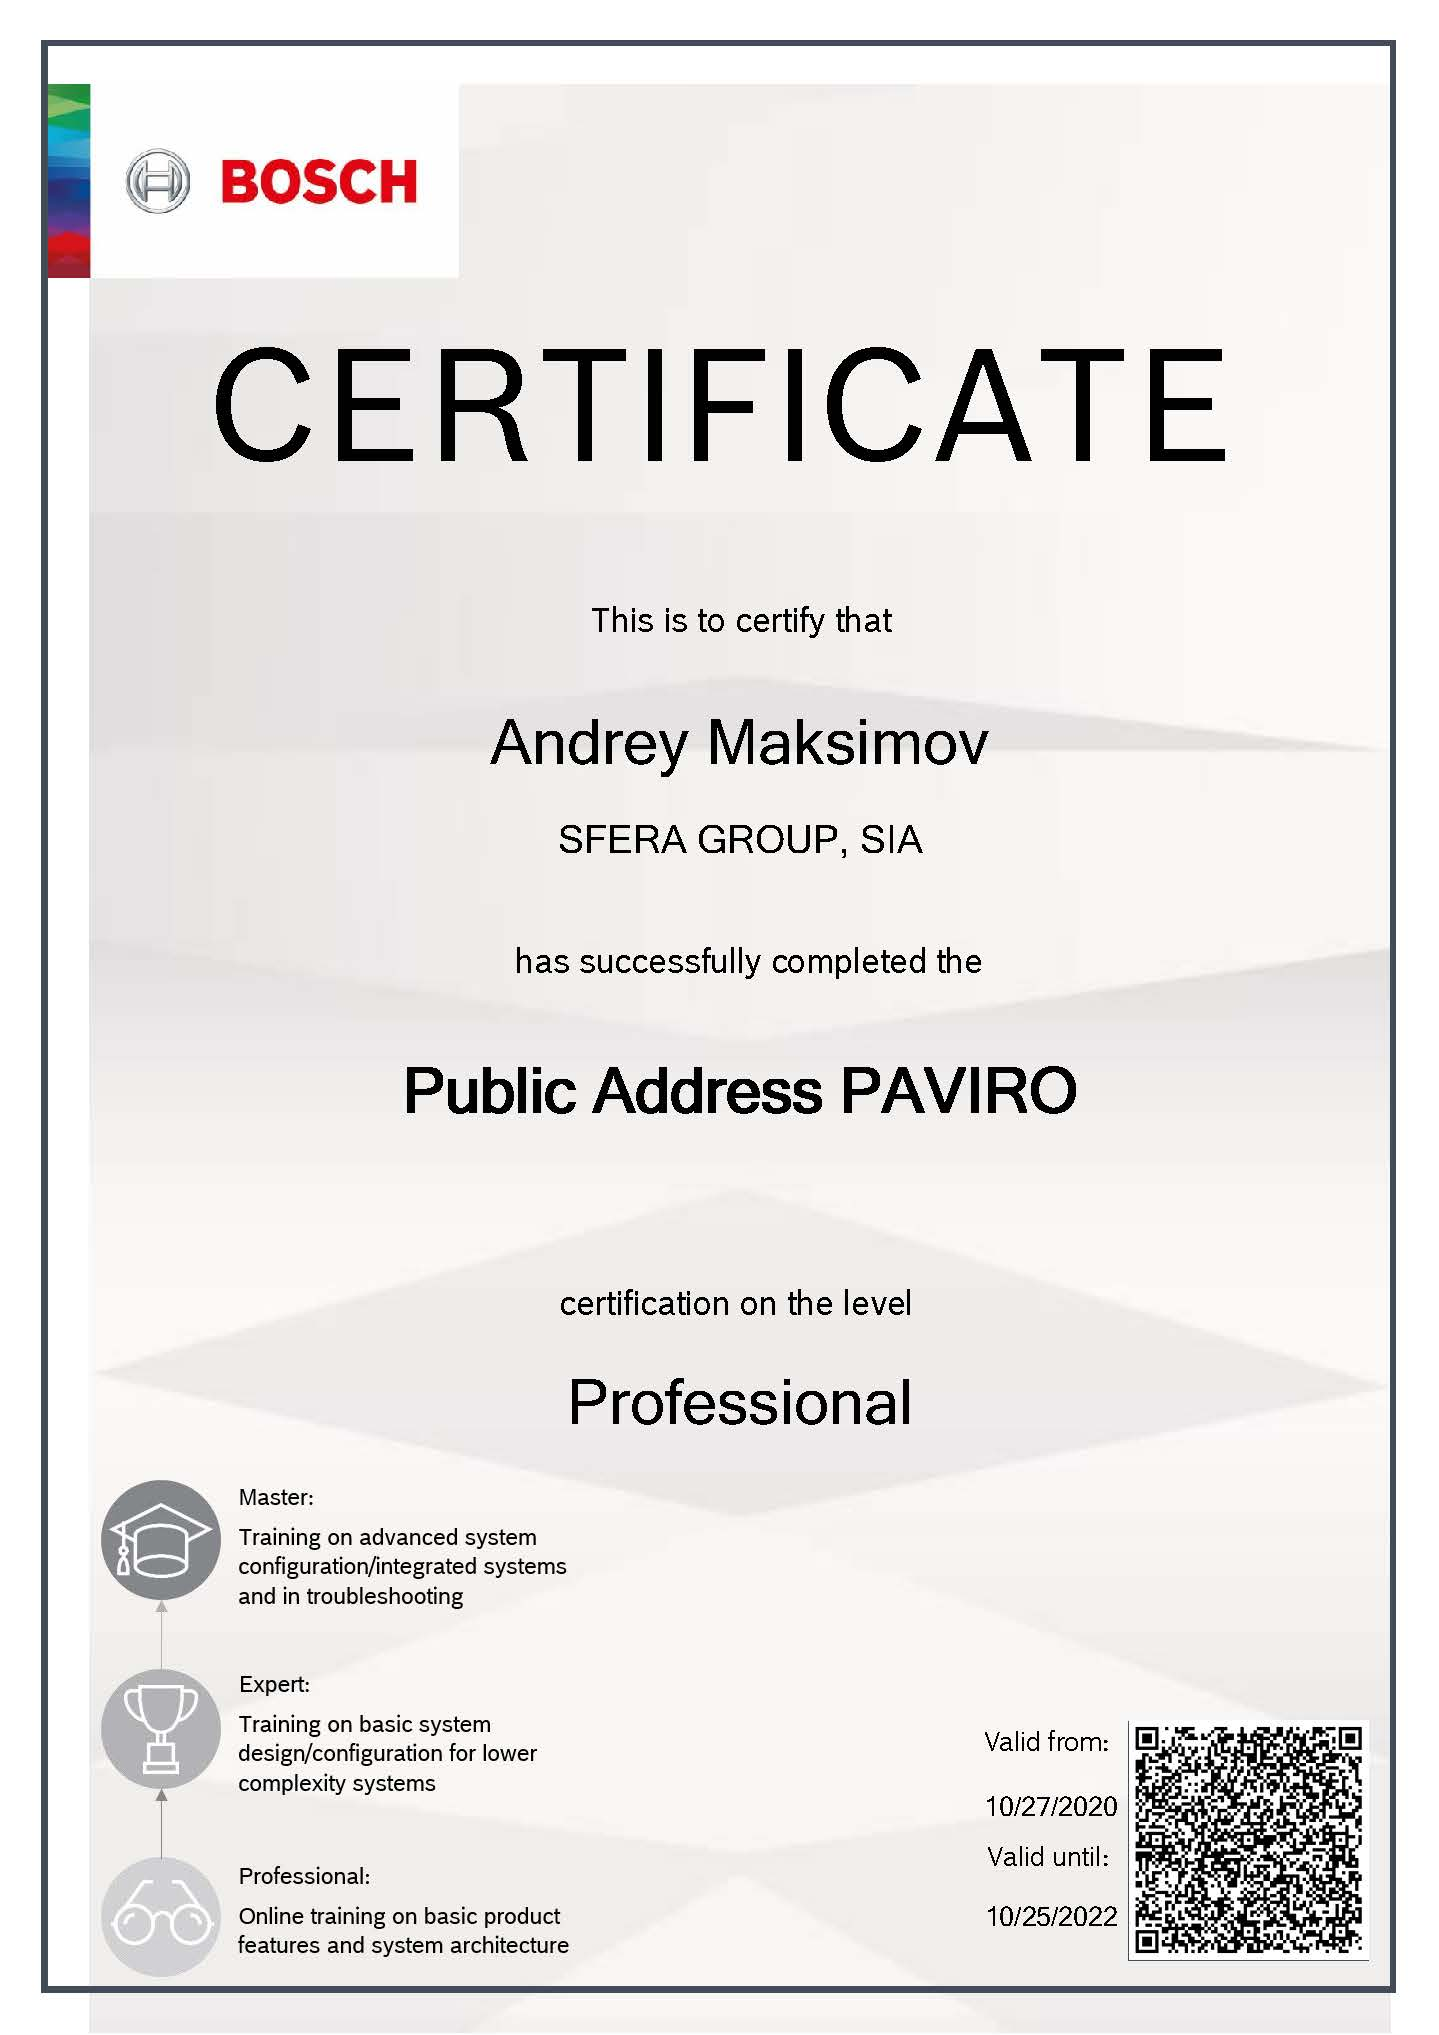 Bosch PAVIRO Technical Professional Certification